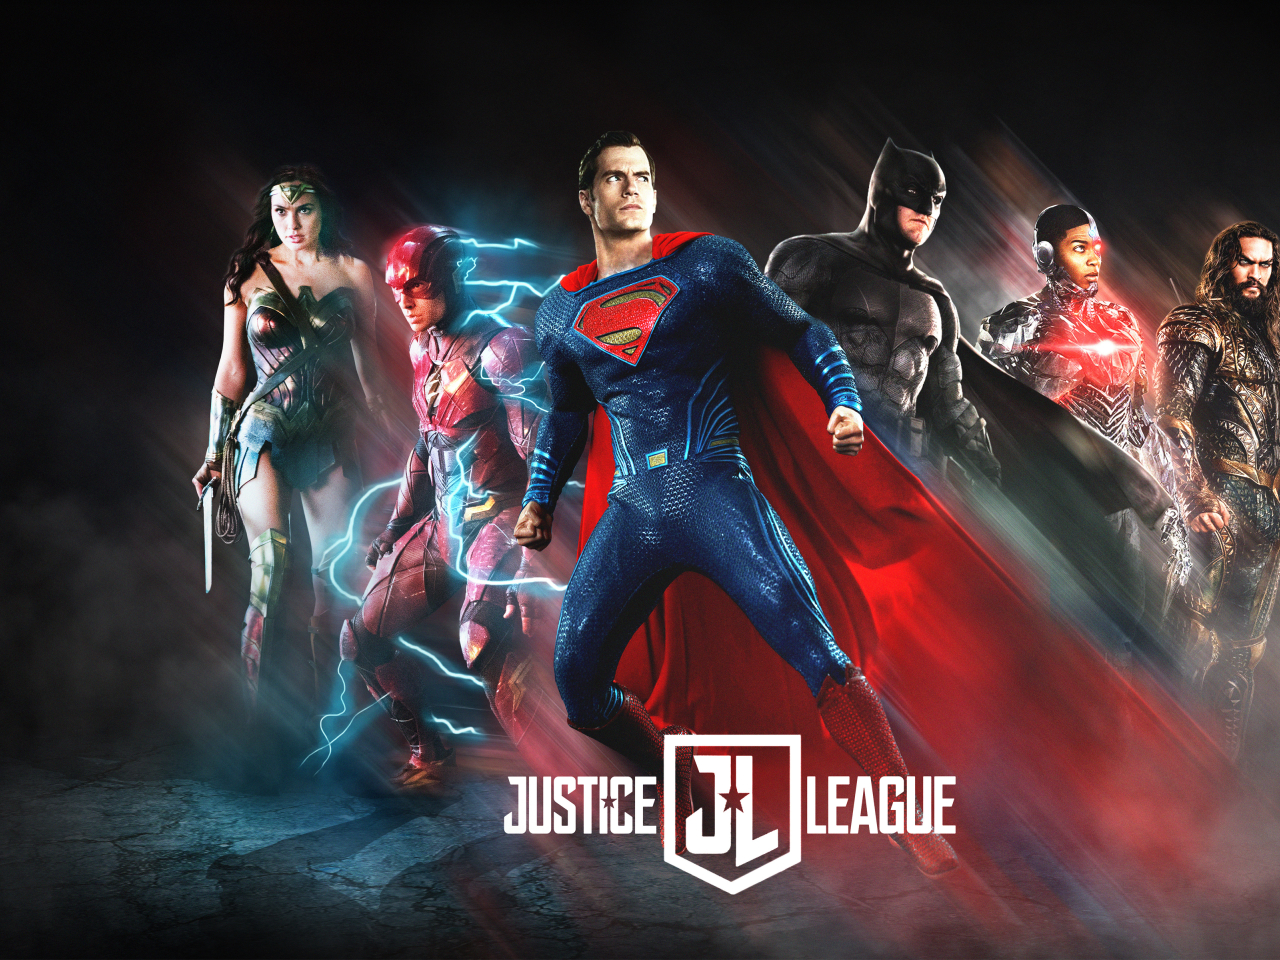 Justice League 2017 Poster Fan Art  Hd 4k Wallpaper